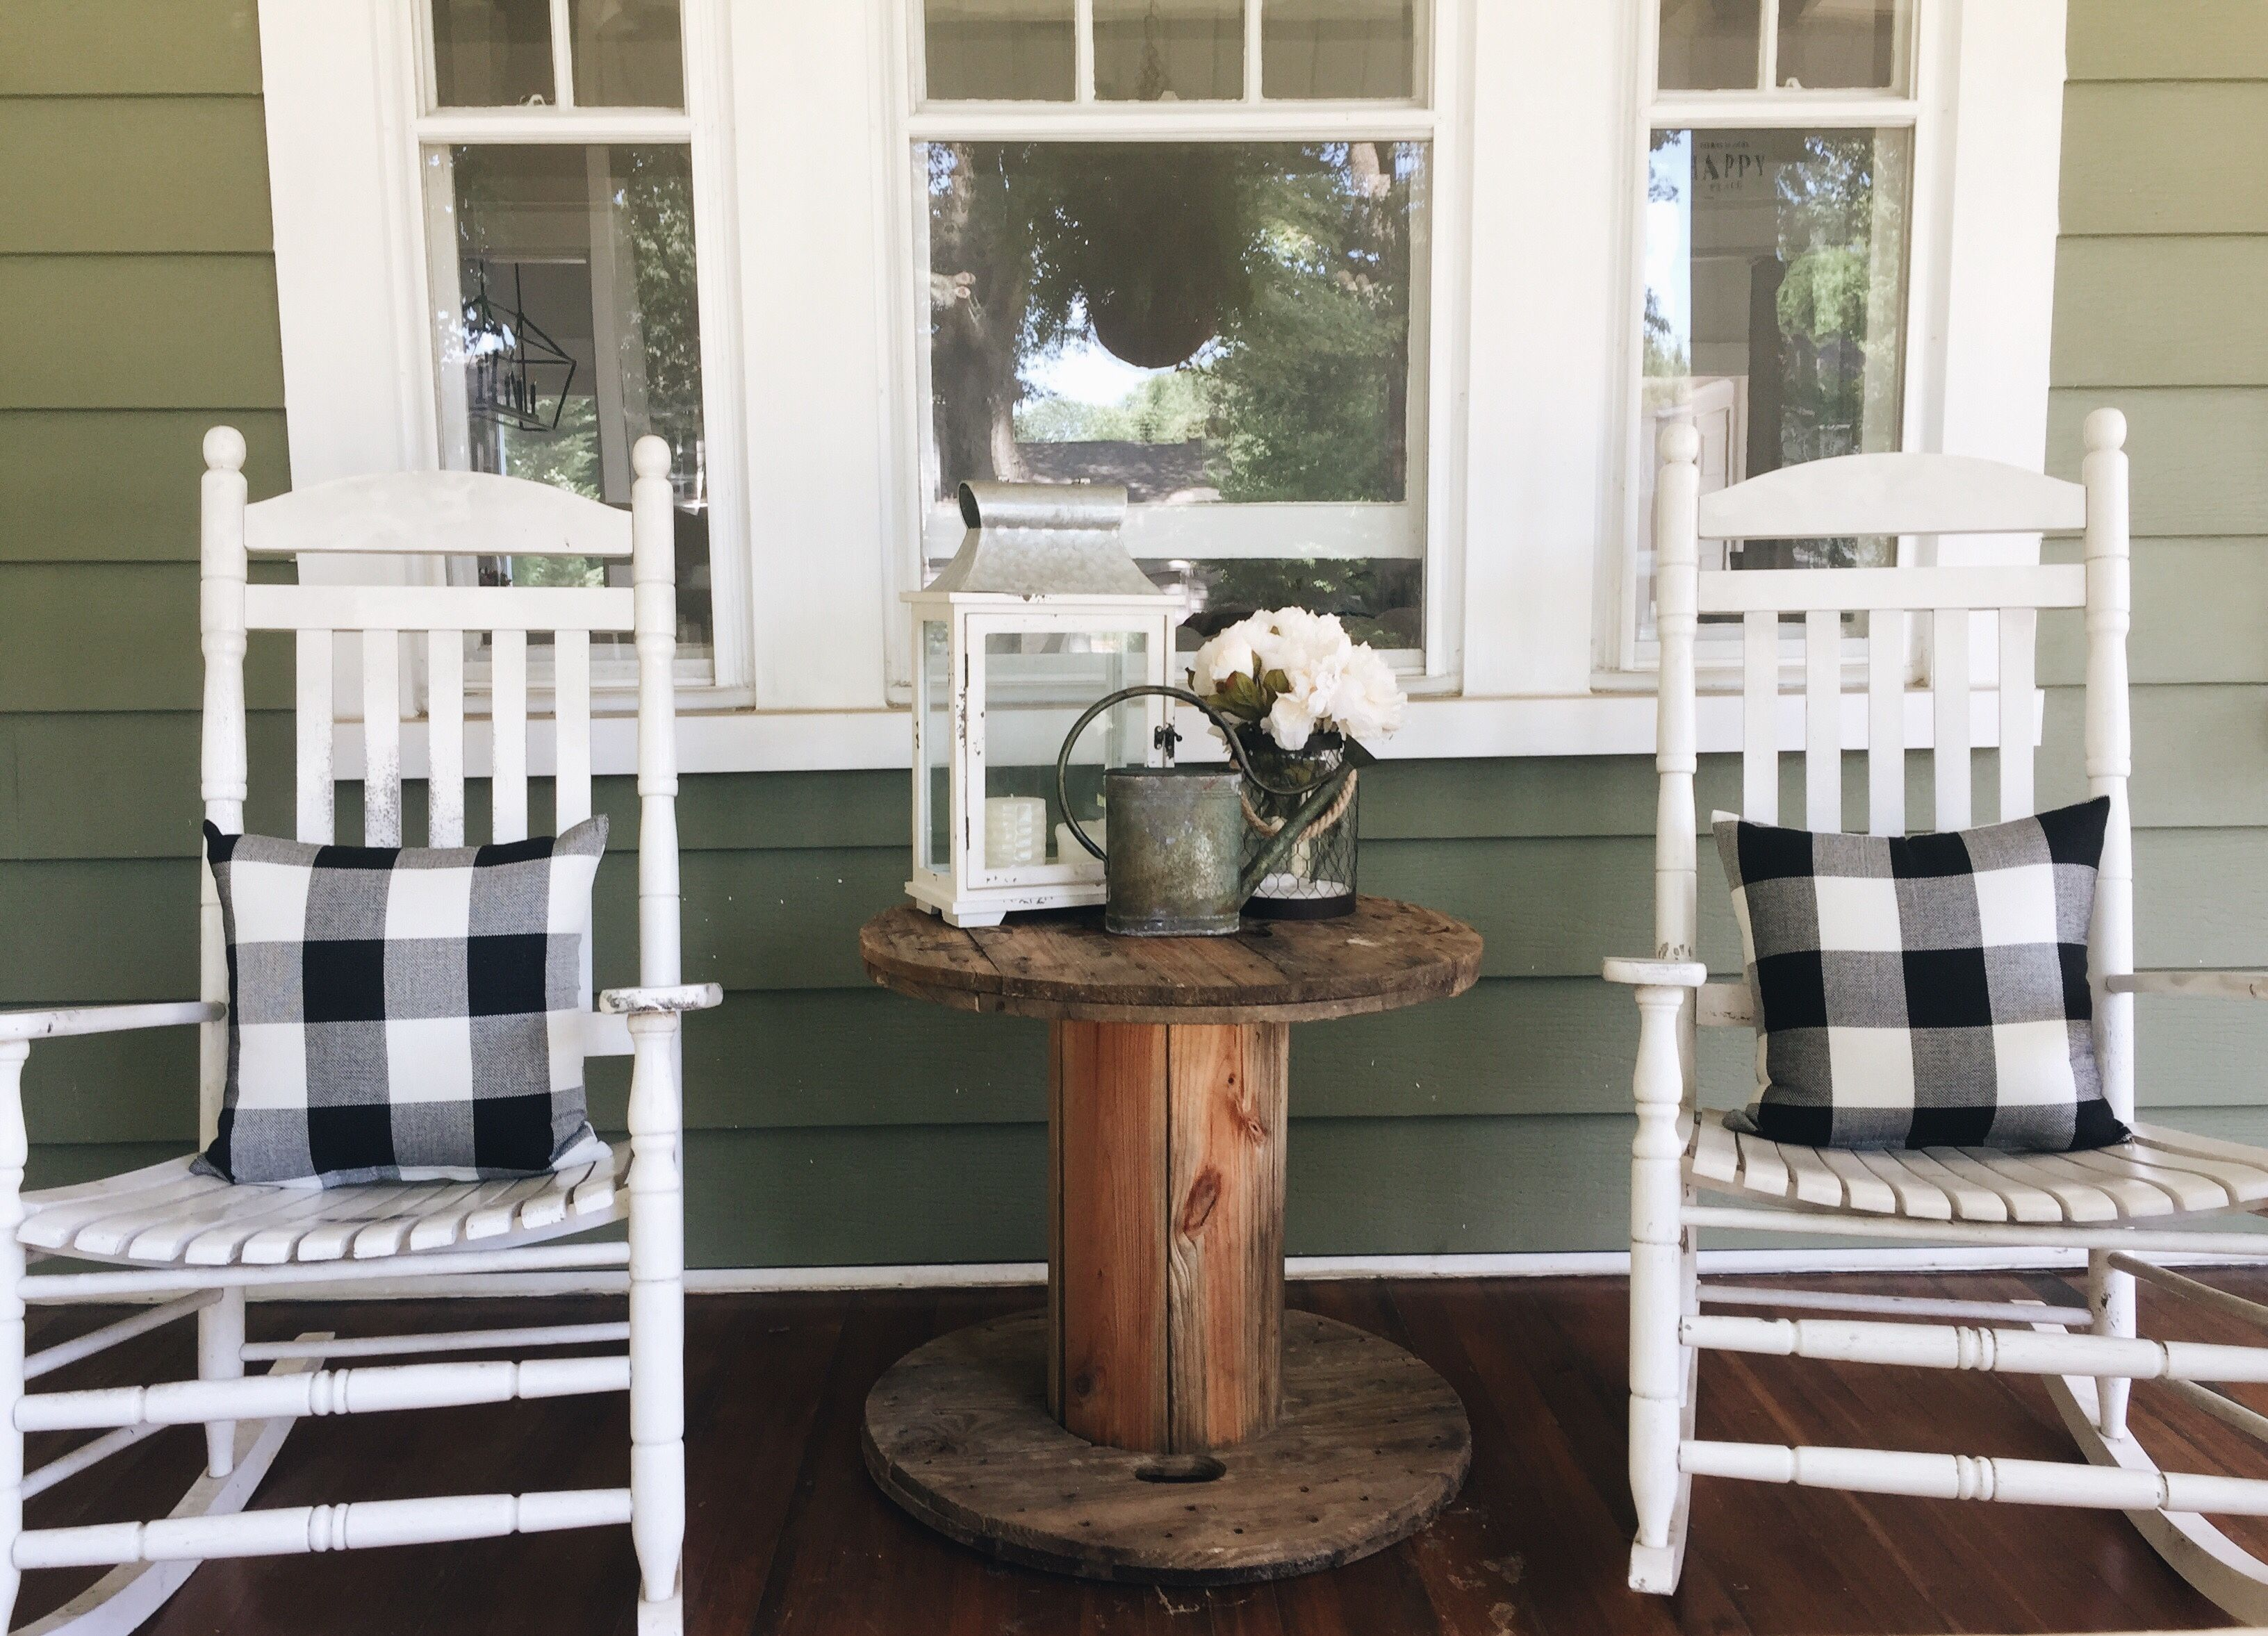 Front Porch Decor Cable Reel Table Black And White Buffalo Check Rocking Chair Green Hou Summer Front Porches Front Porch Decorating Fall Front Porch Decor